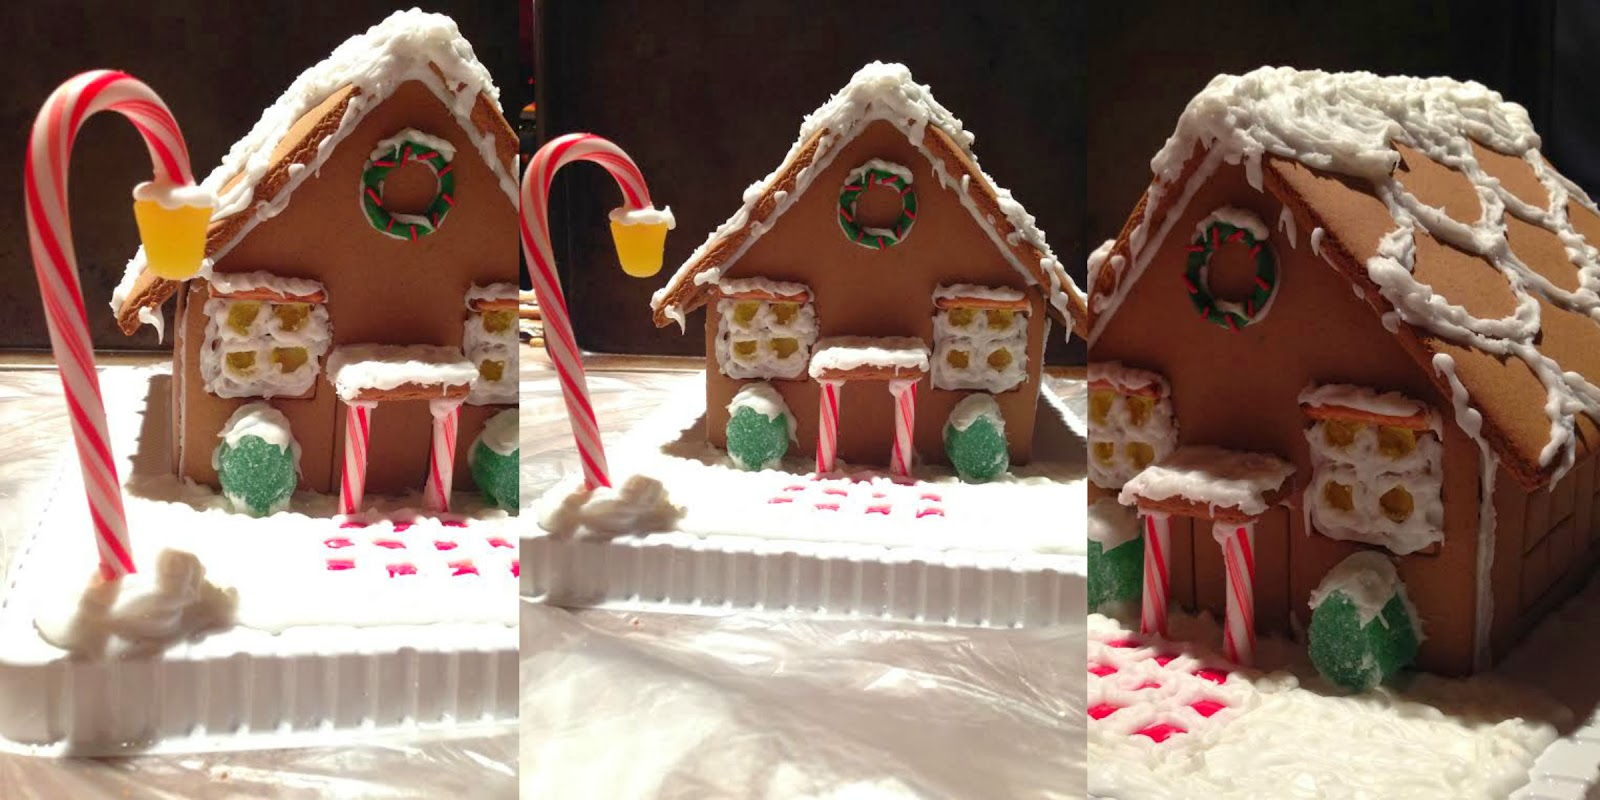 Gingerbread House, Classic Gingerbread House